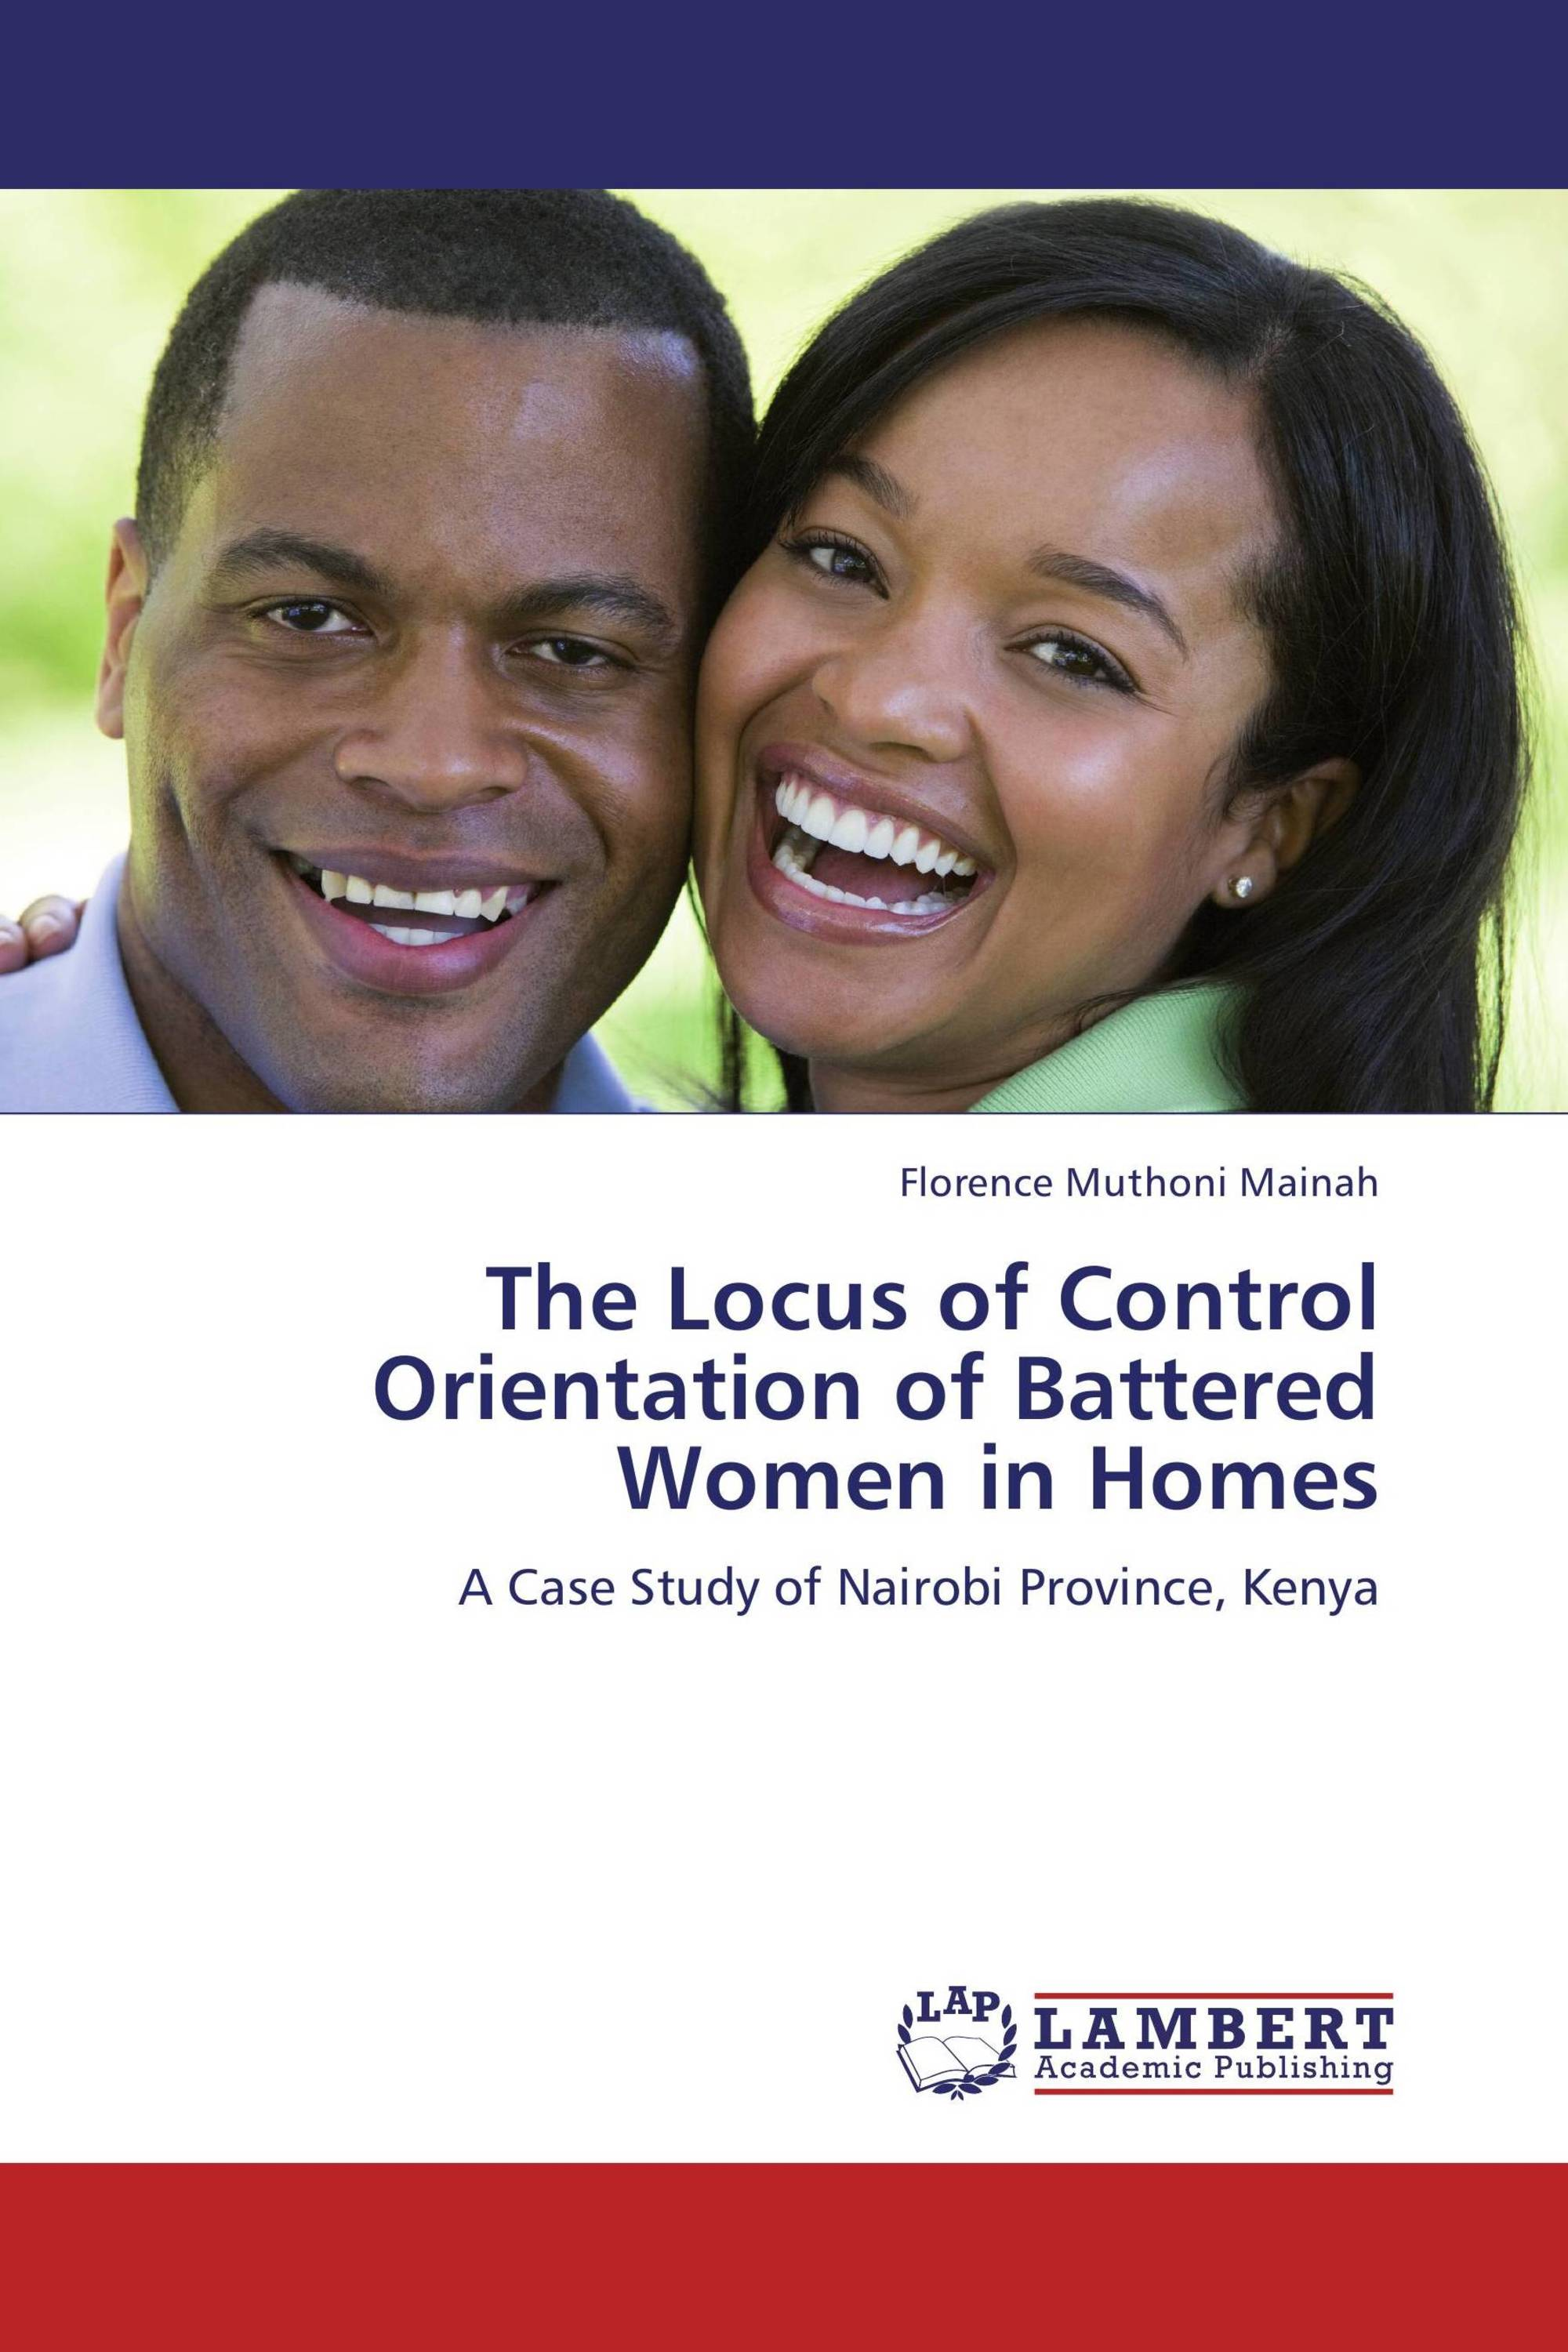 The Locus of Control Orientation of Battered Women in Homes